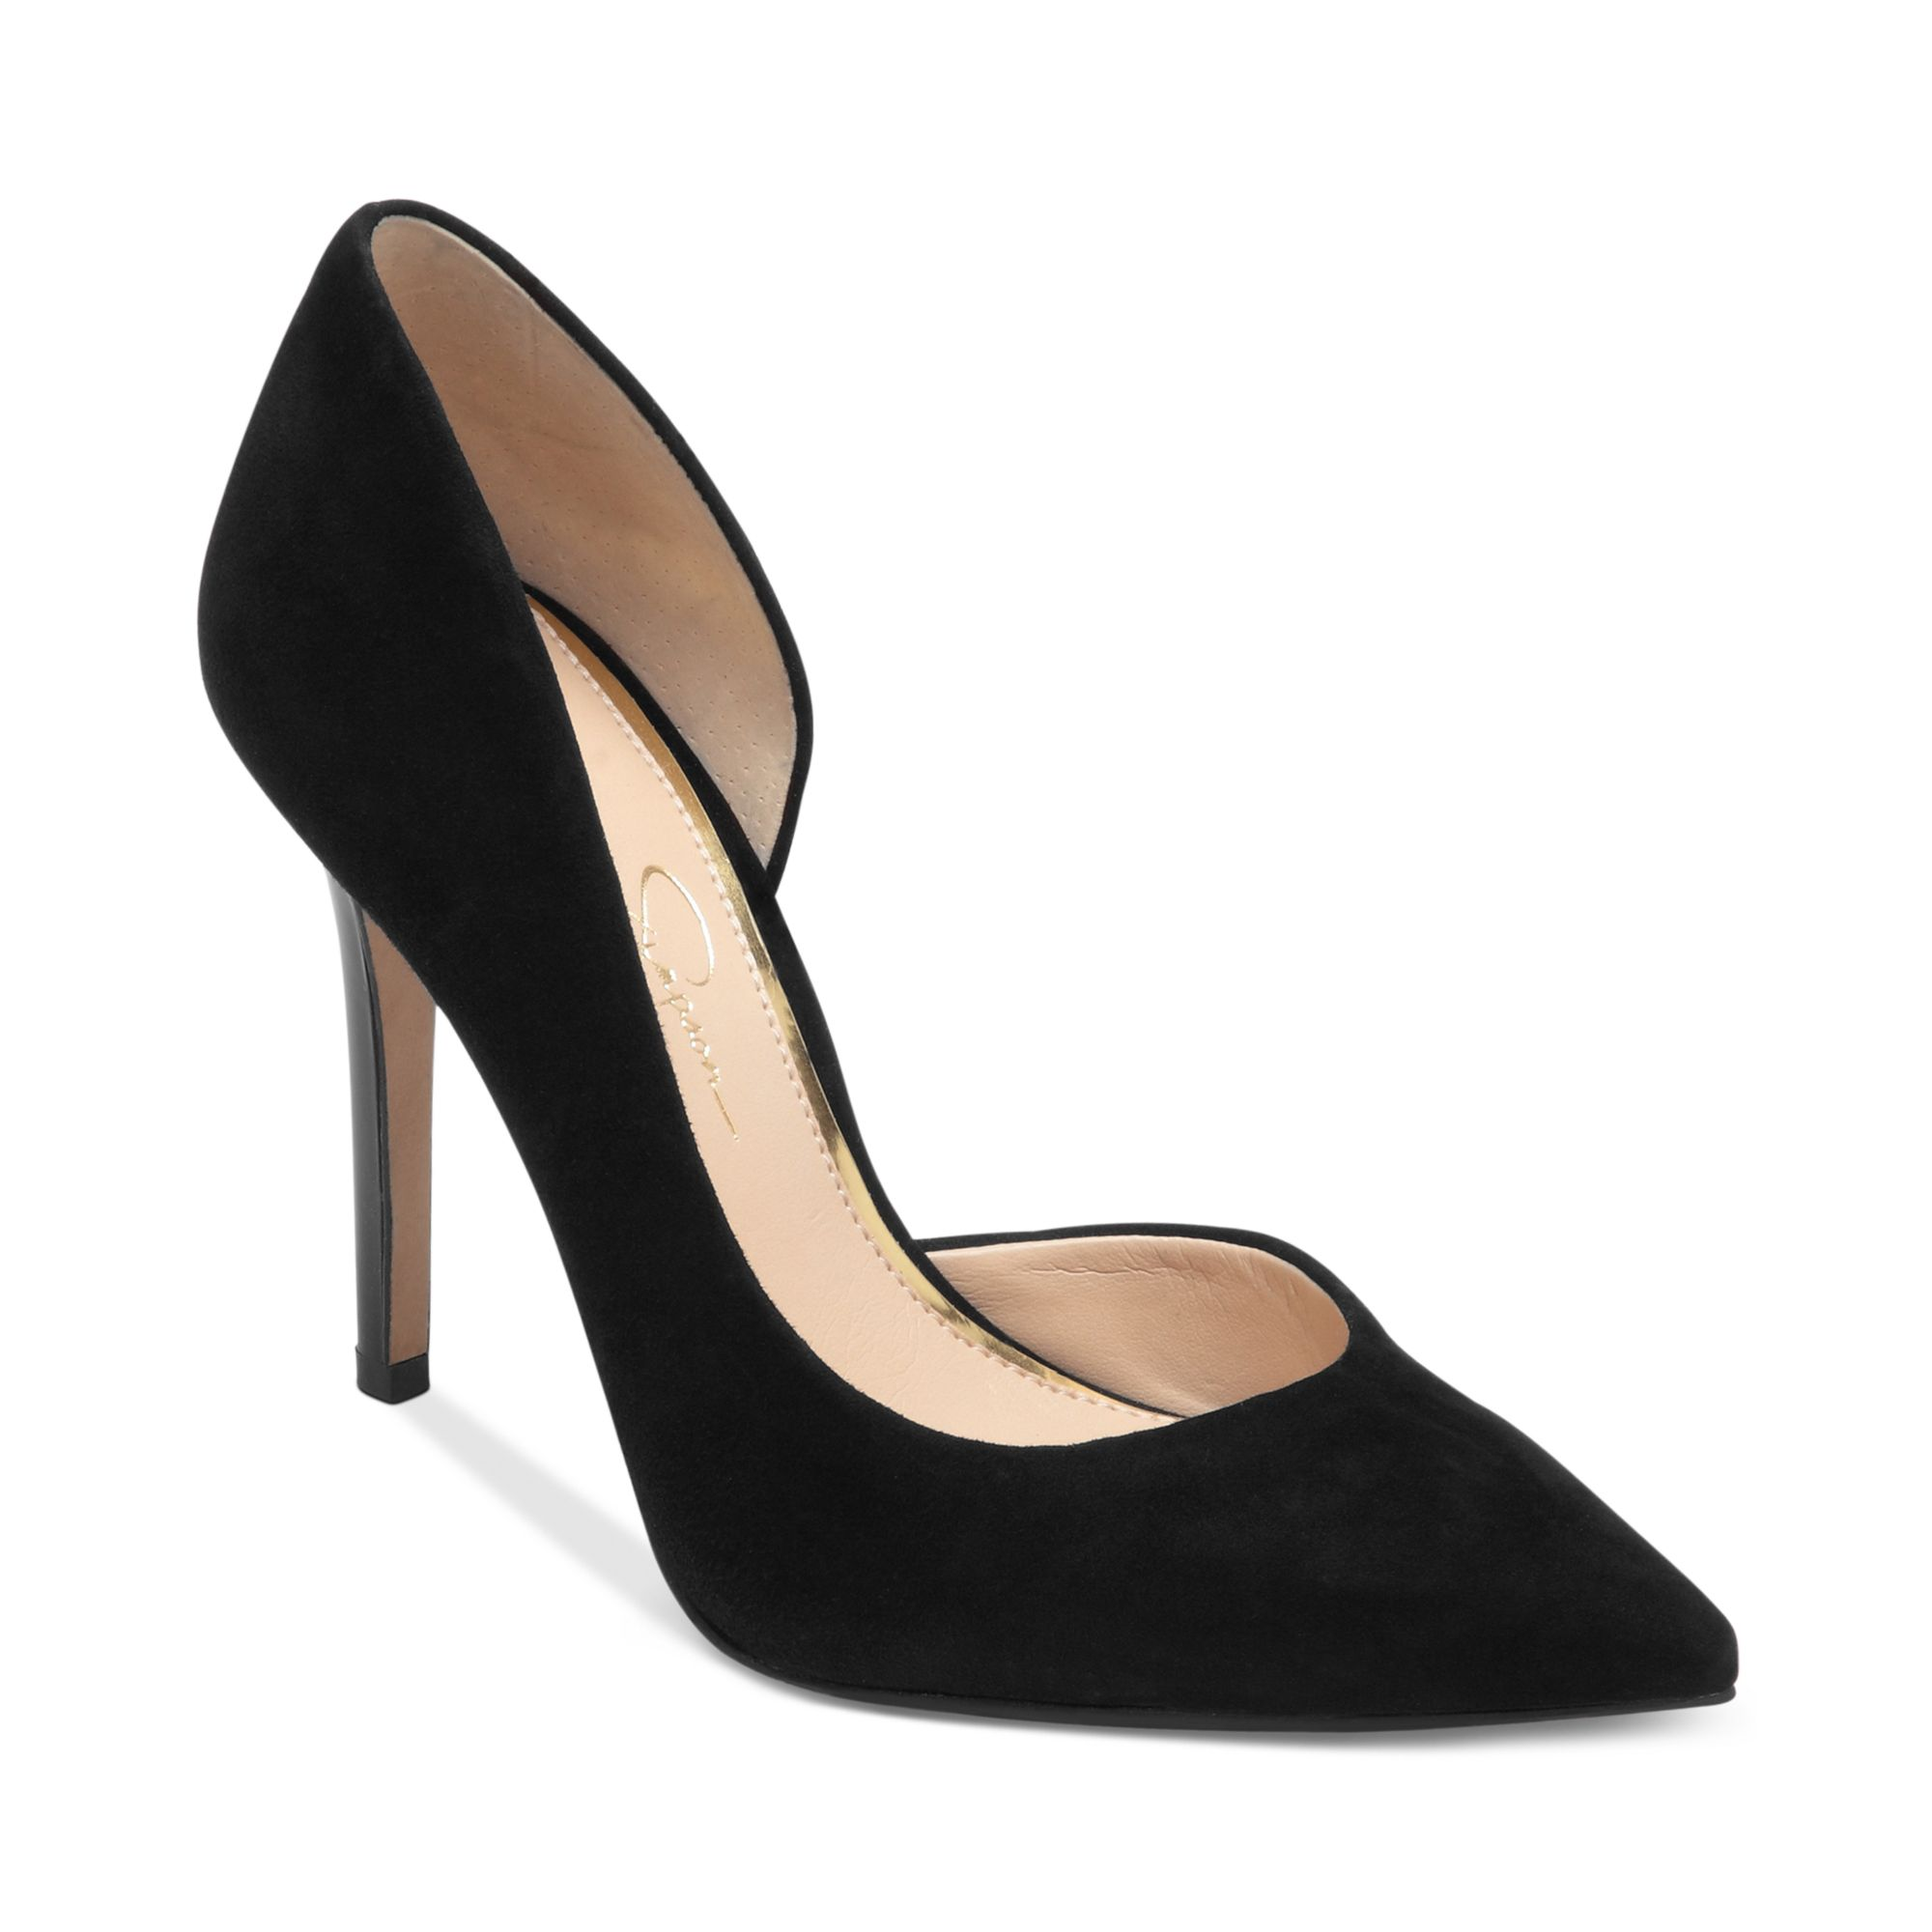 01bbeb27b67 Lyst - Jessica Simpson Claudette Dorsay Pumps in Black